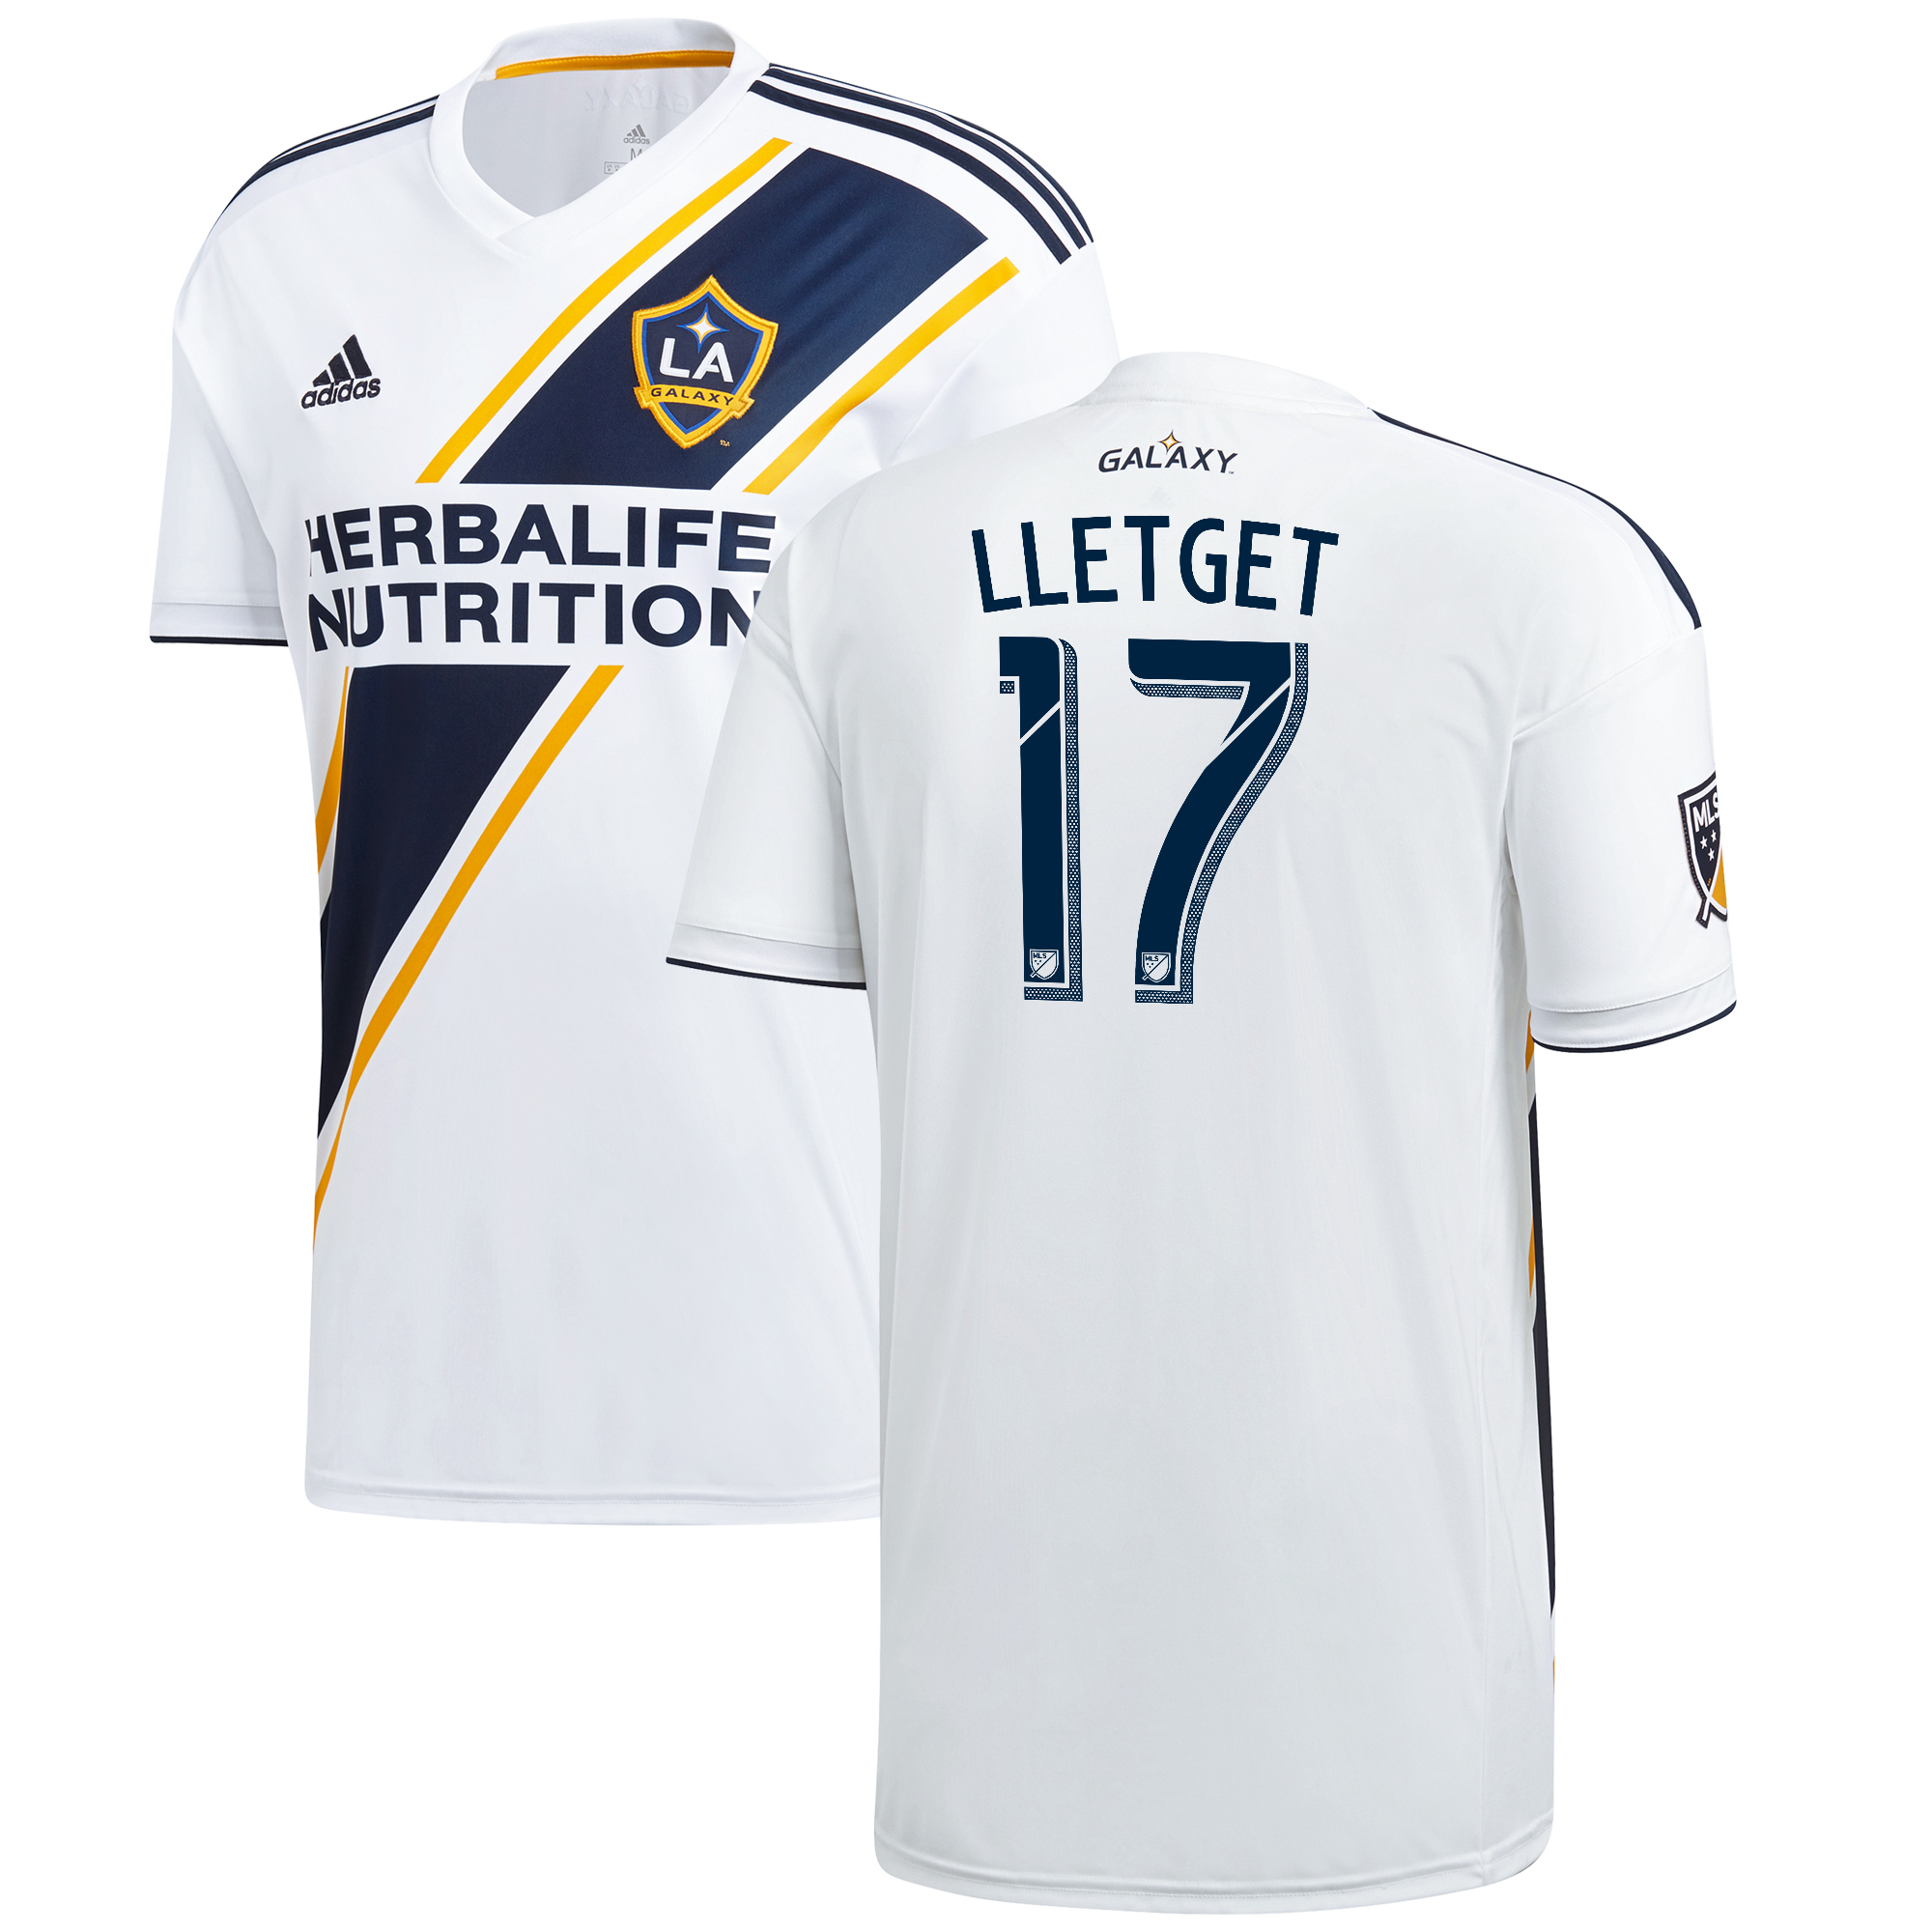 LA Galaxy Home Shirt 2018 with Lletget 17 printing